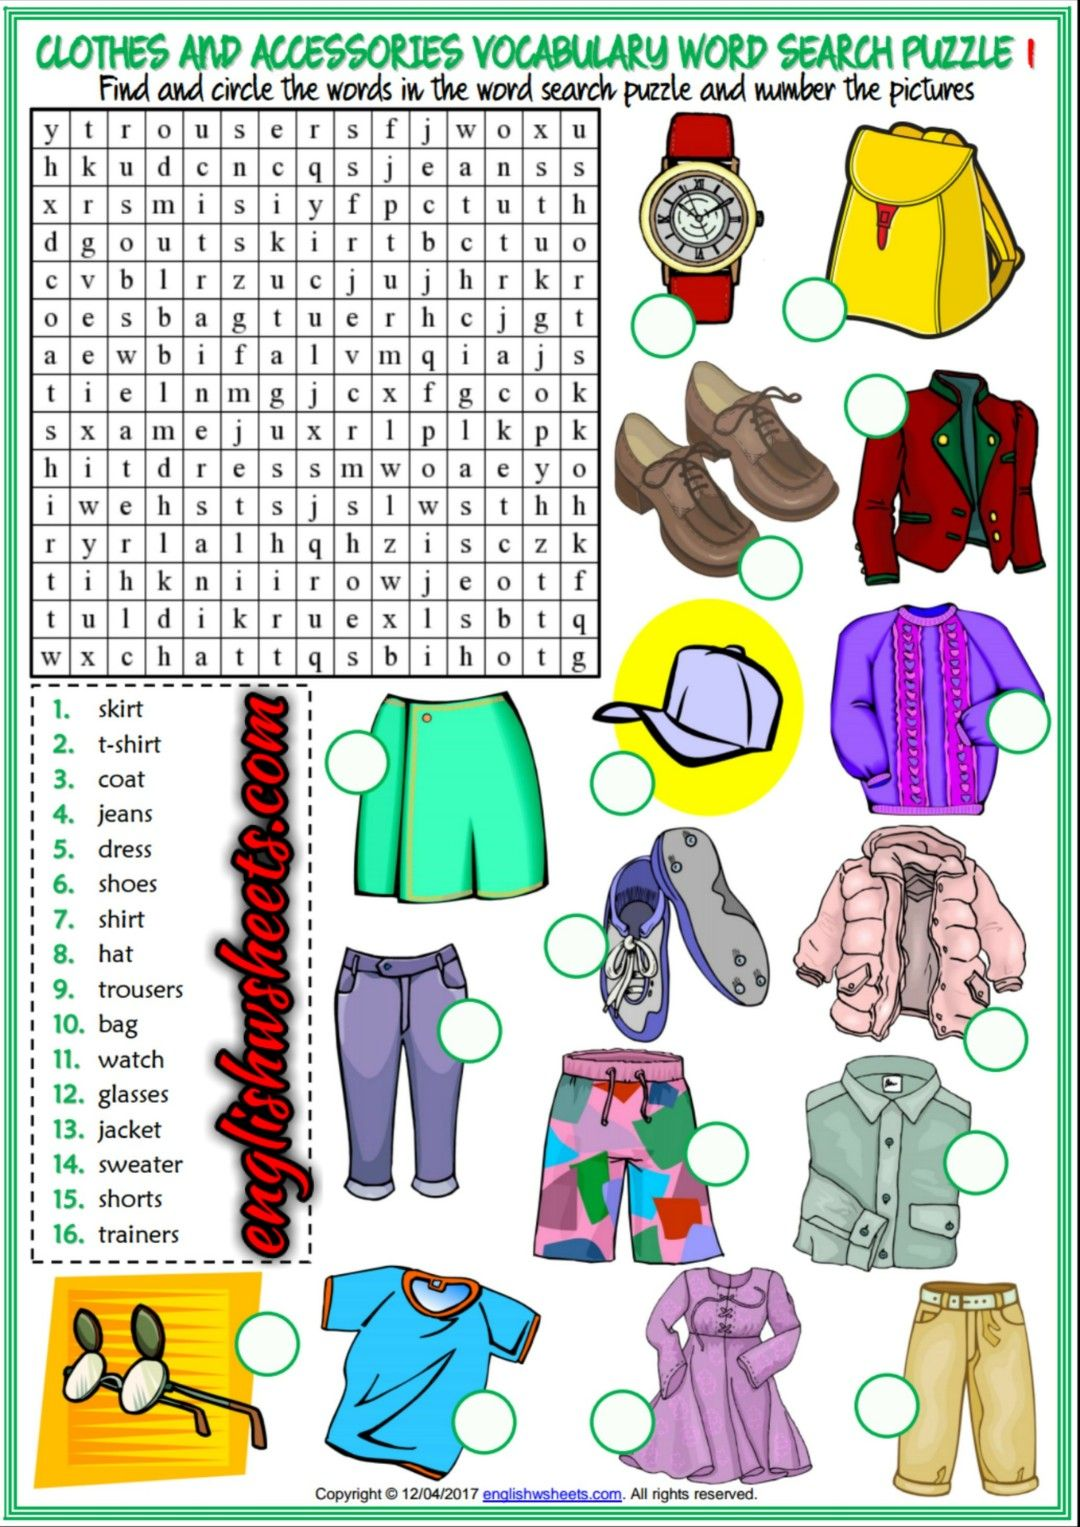 worksheet English Language Puzzles Worksheets clothes and accessories esl printable word search puzzle worksheets for kids